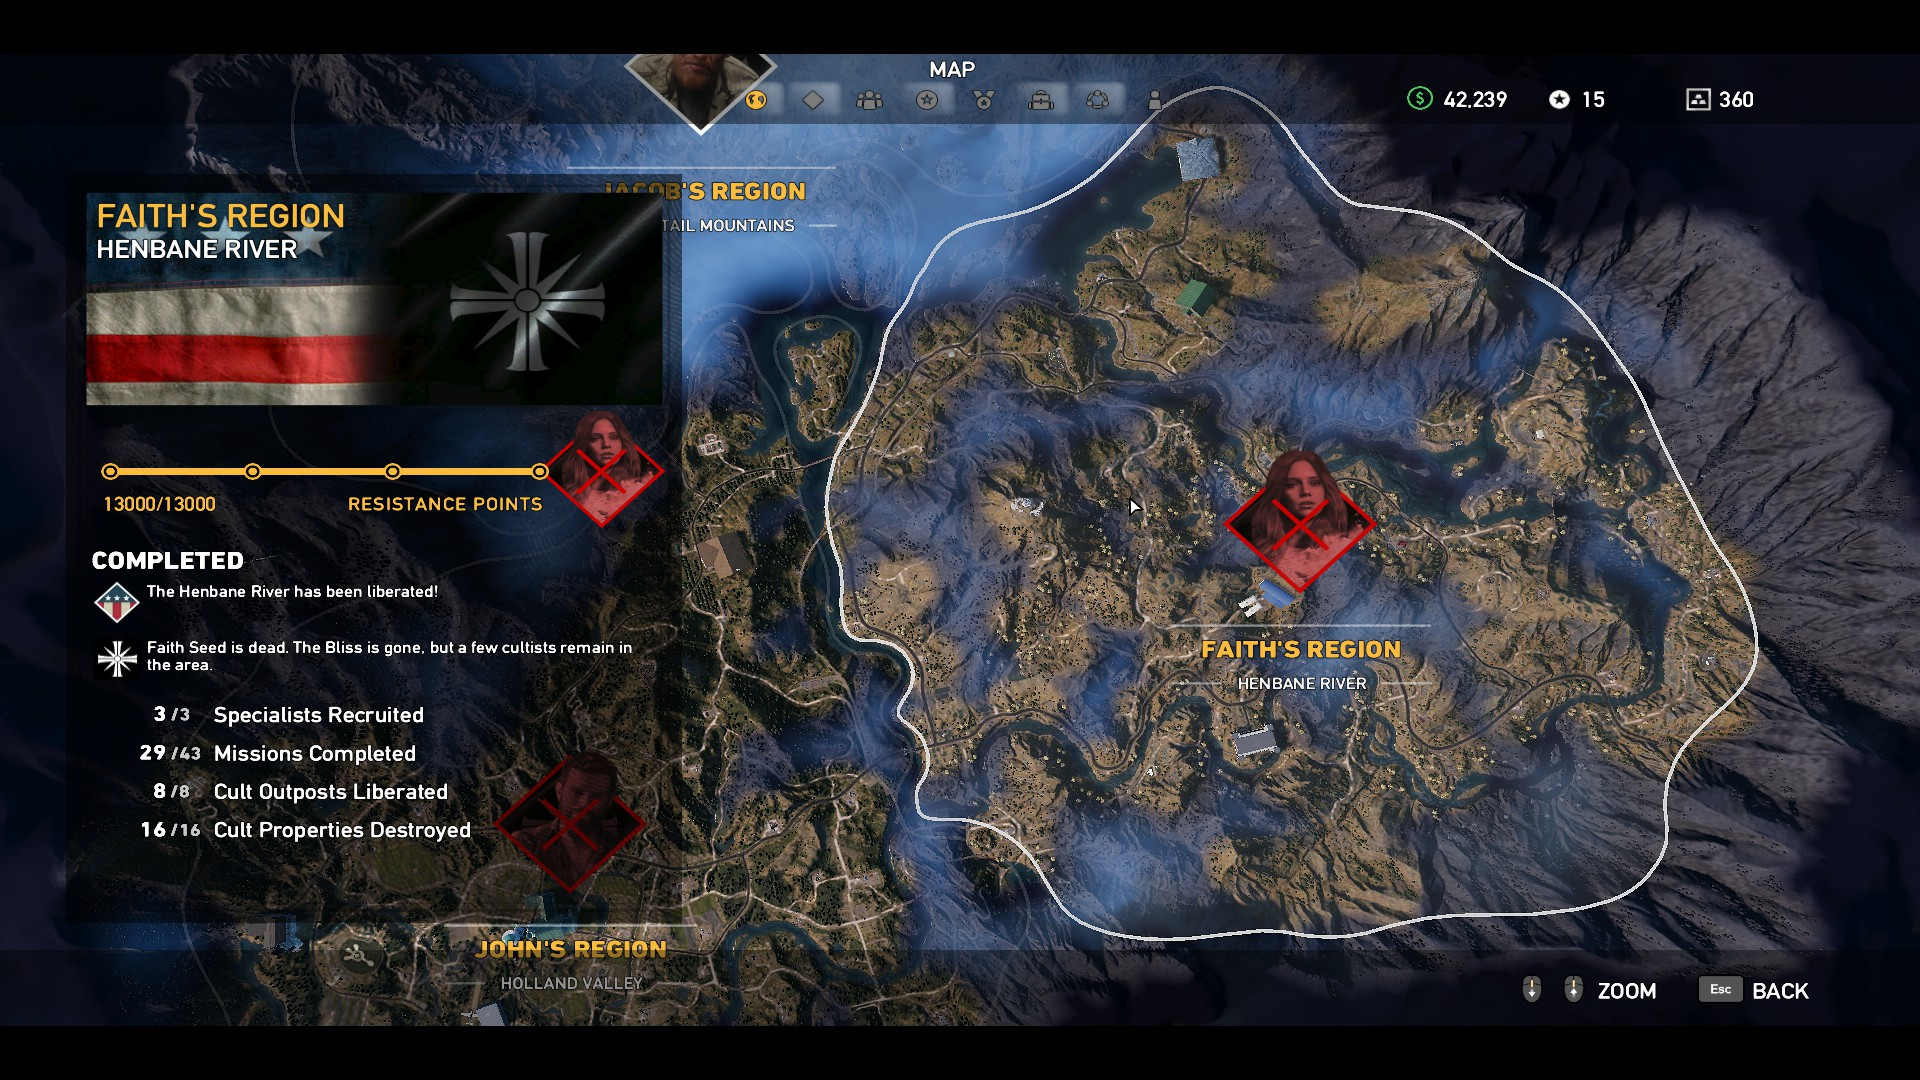 Far Cry 5 Hope Springs Eternal Games Quarter To Three Forums